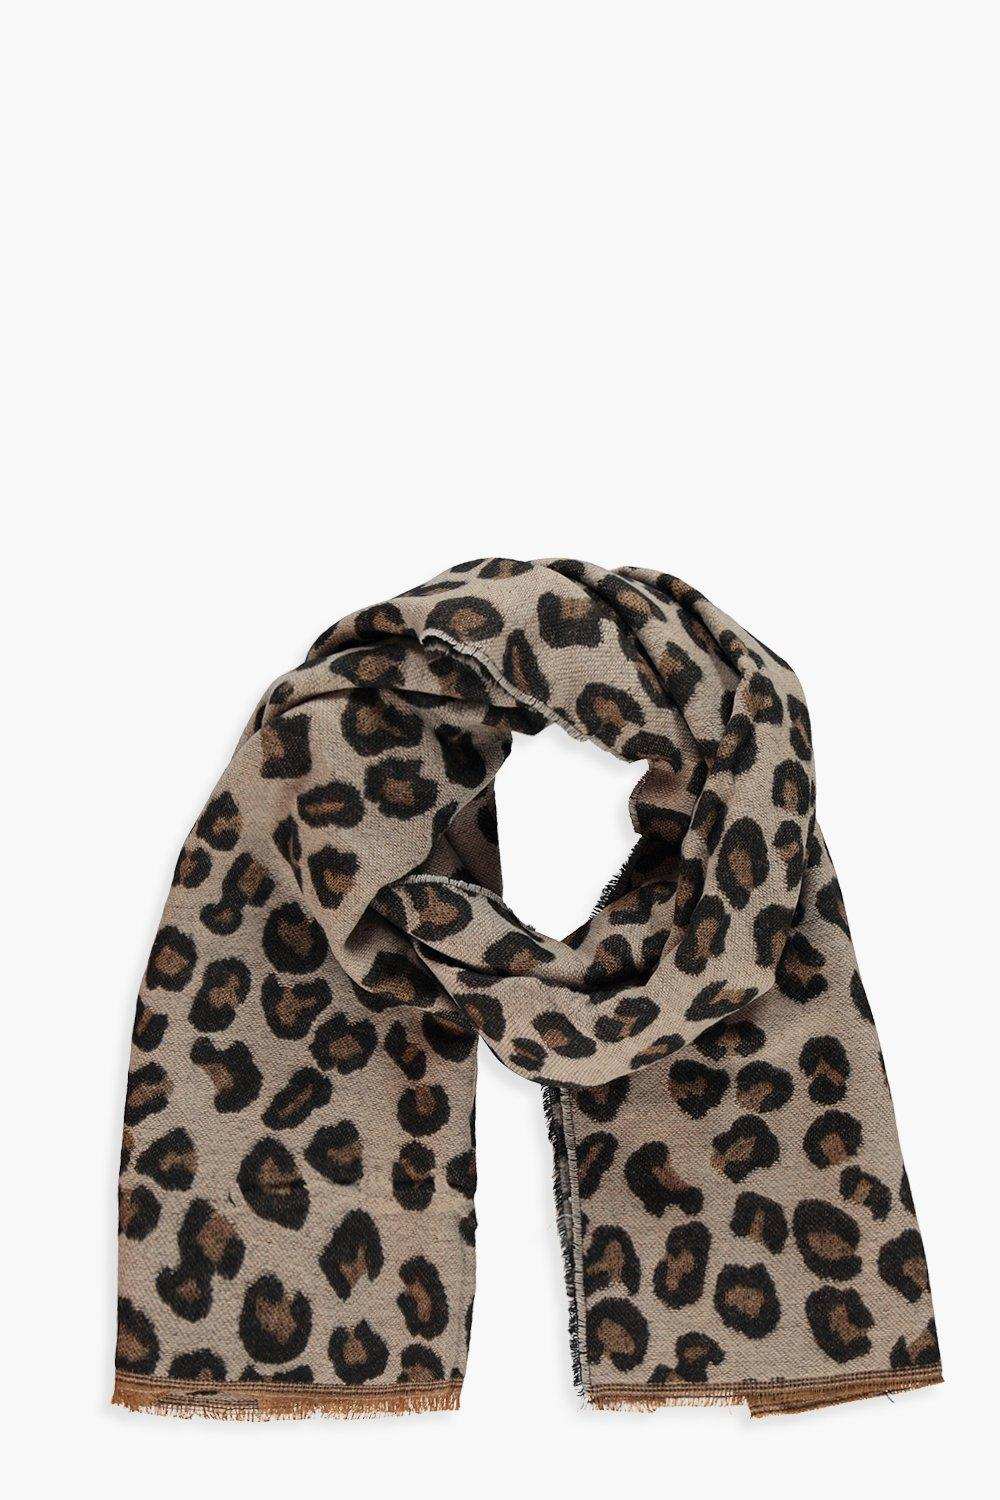 Leopard Print Heavy Weight Scarf